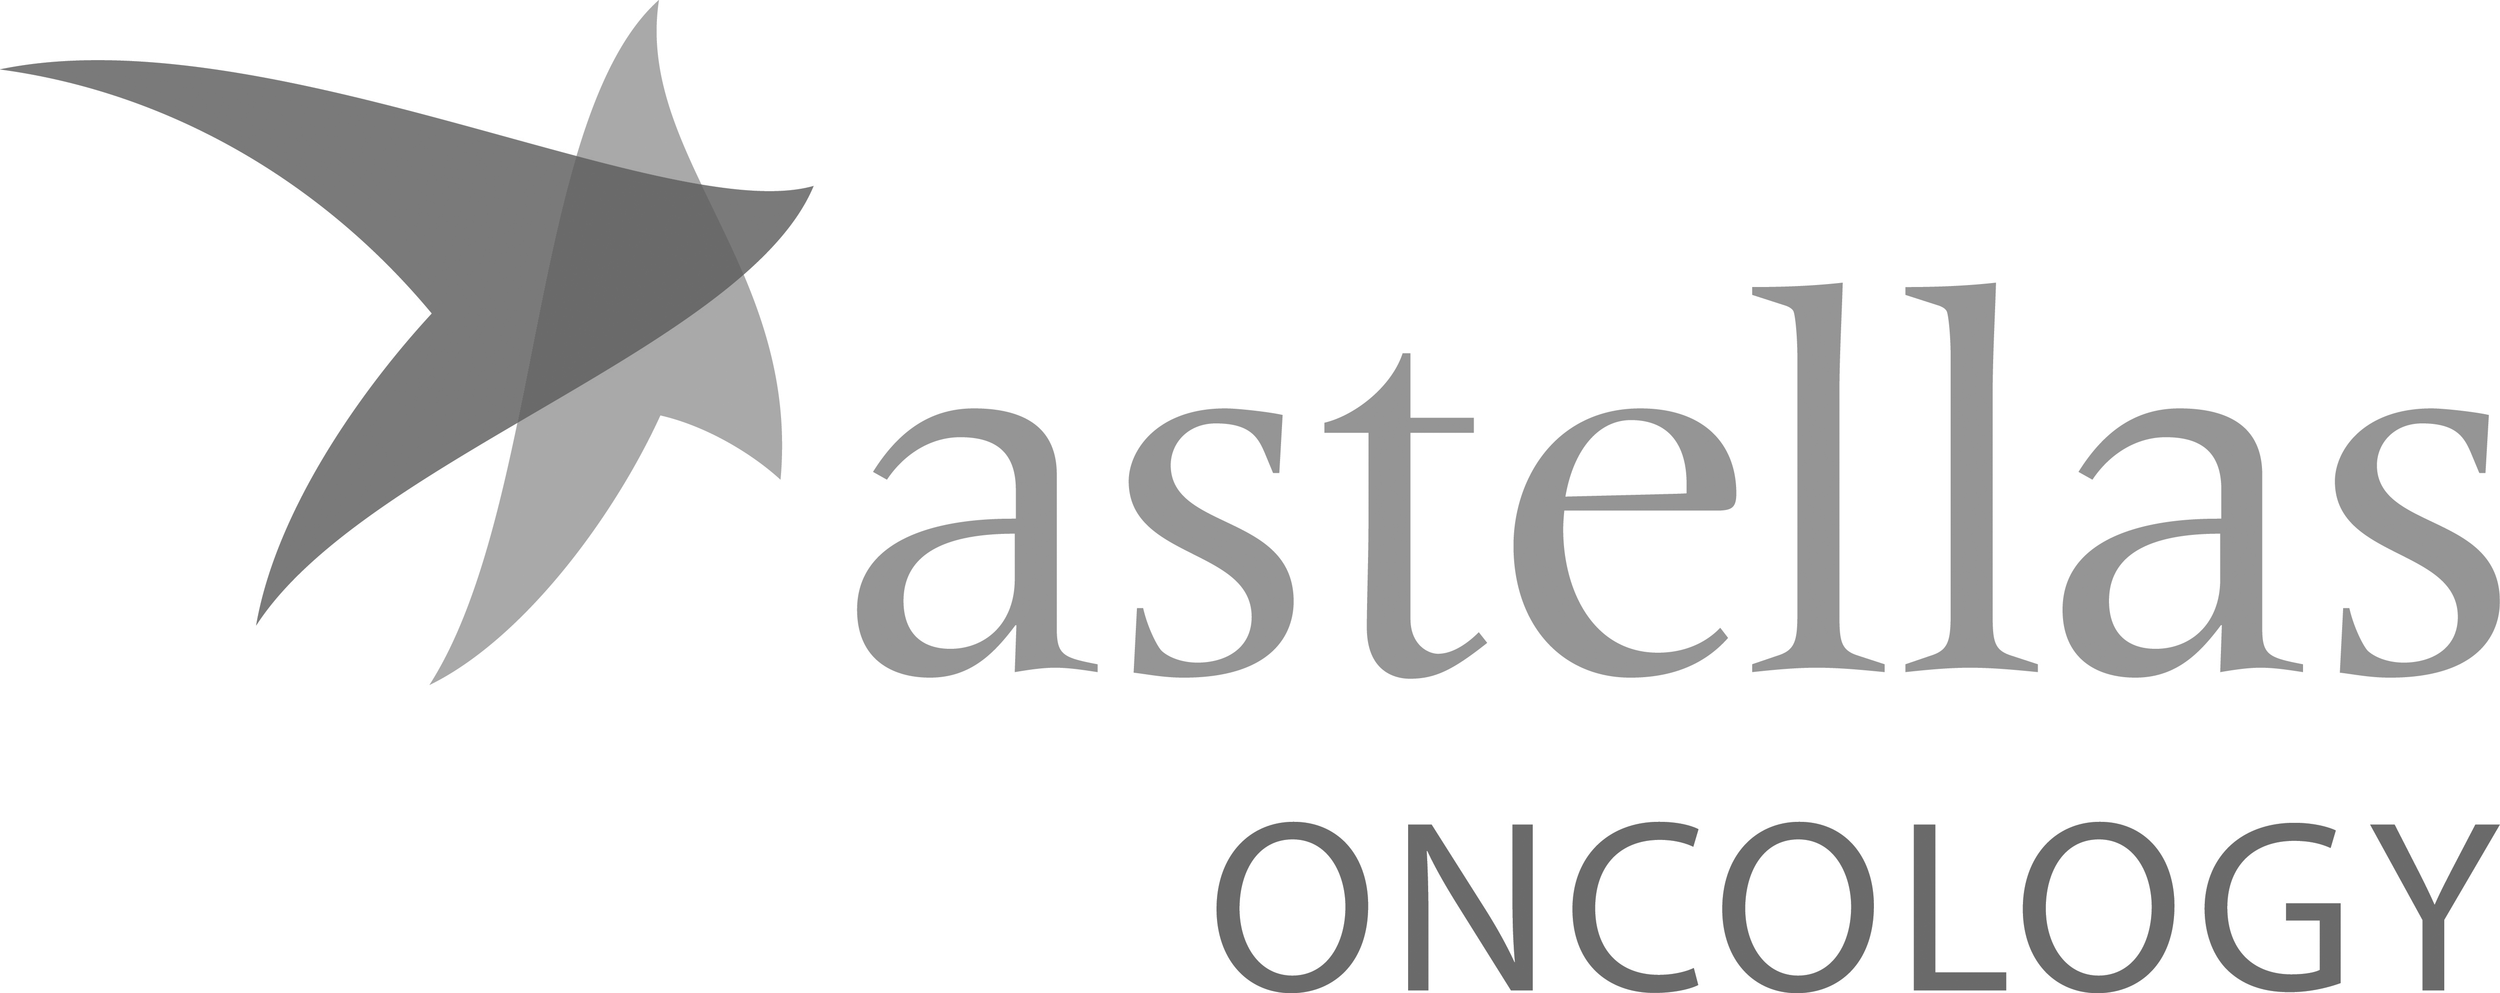 Astellas_Oncology_CMYK.png